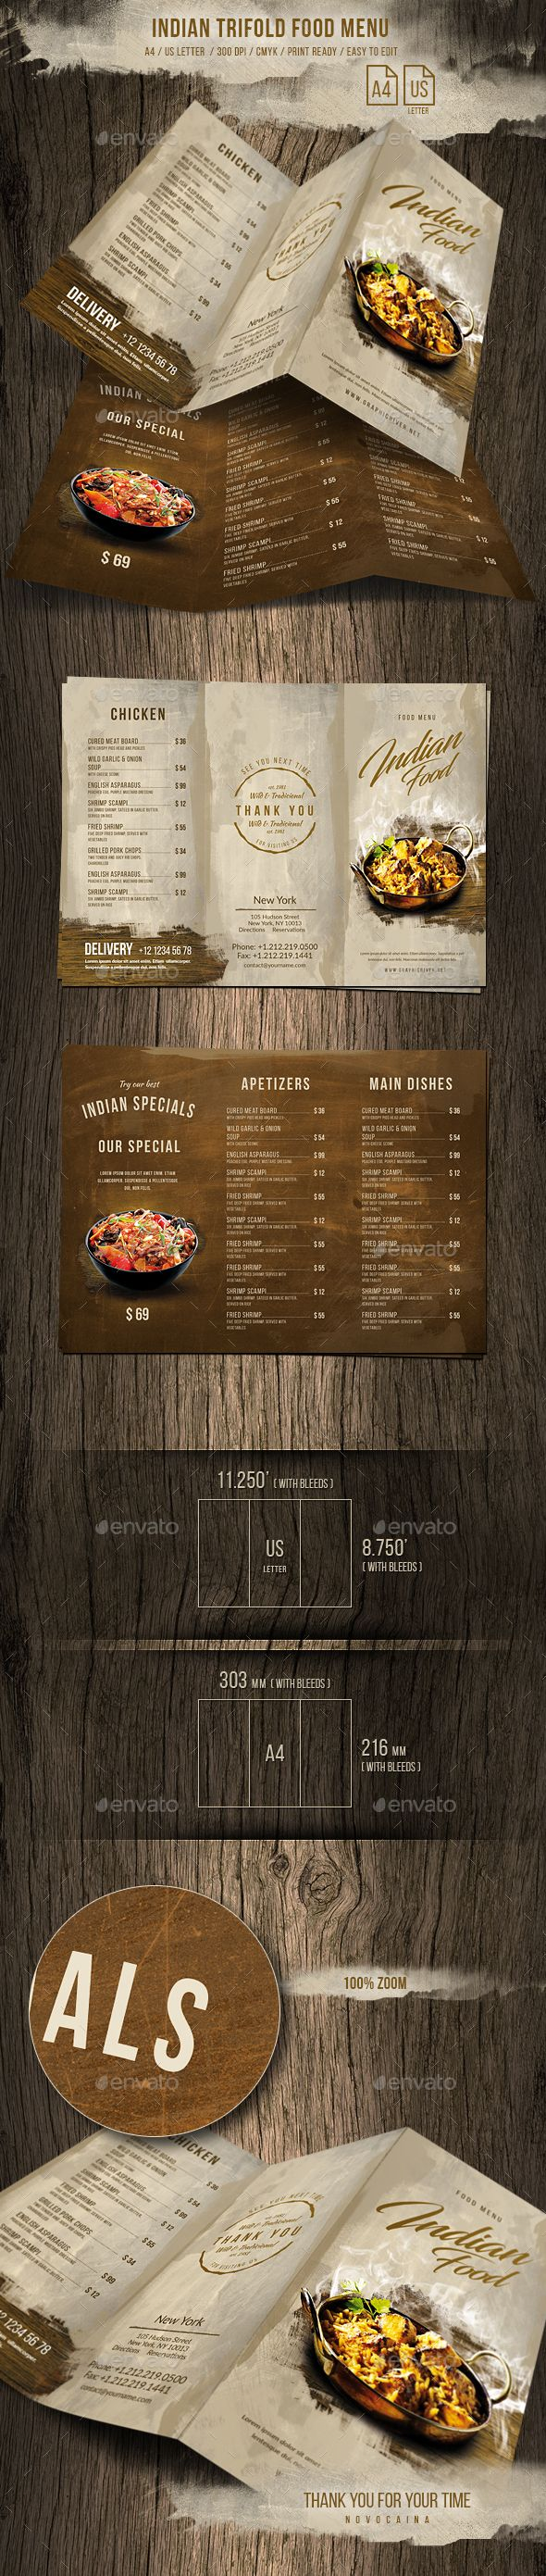 Indian A4 and US Letter Trifold Food Menu - Food Menus Print Templates Download here : https://graphicriver.net/item/indian-a4-and-us-letter-trifold-food-menu/20698642?s_rank=14&ref=Al-fatih #food menu #food menus template #flyer food #design #promotion #template #print templates #restaurant  #bifold #trifold #premium design #table tent